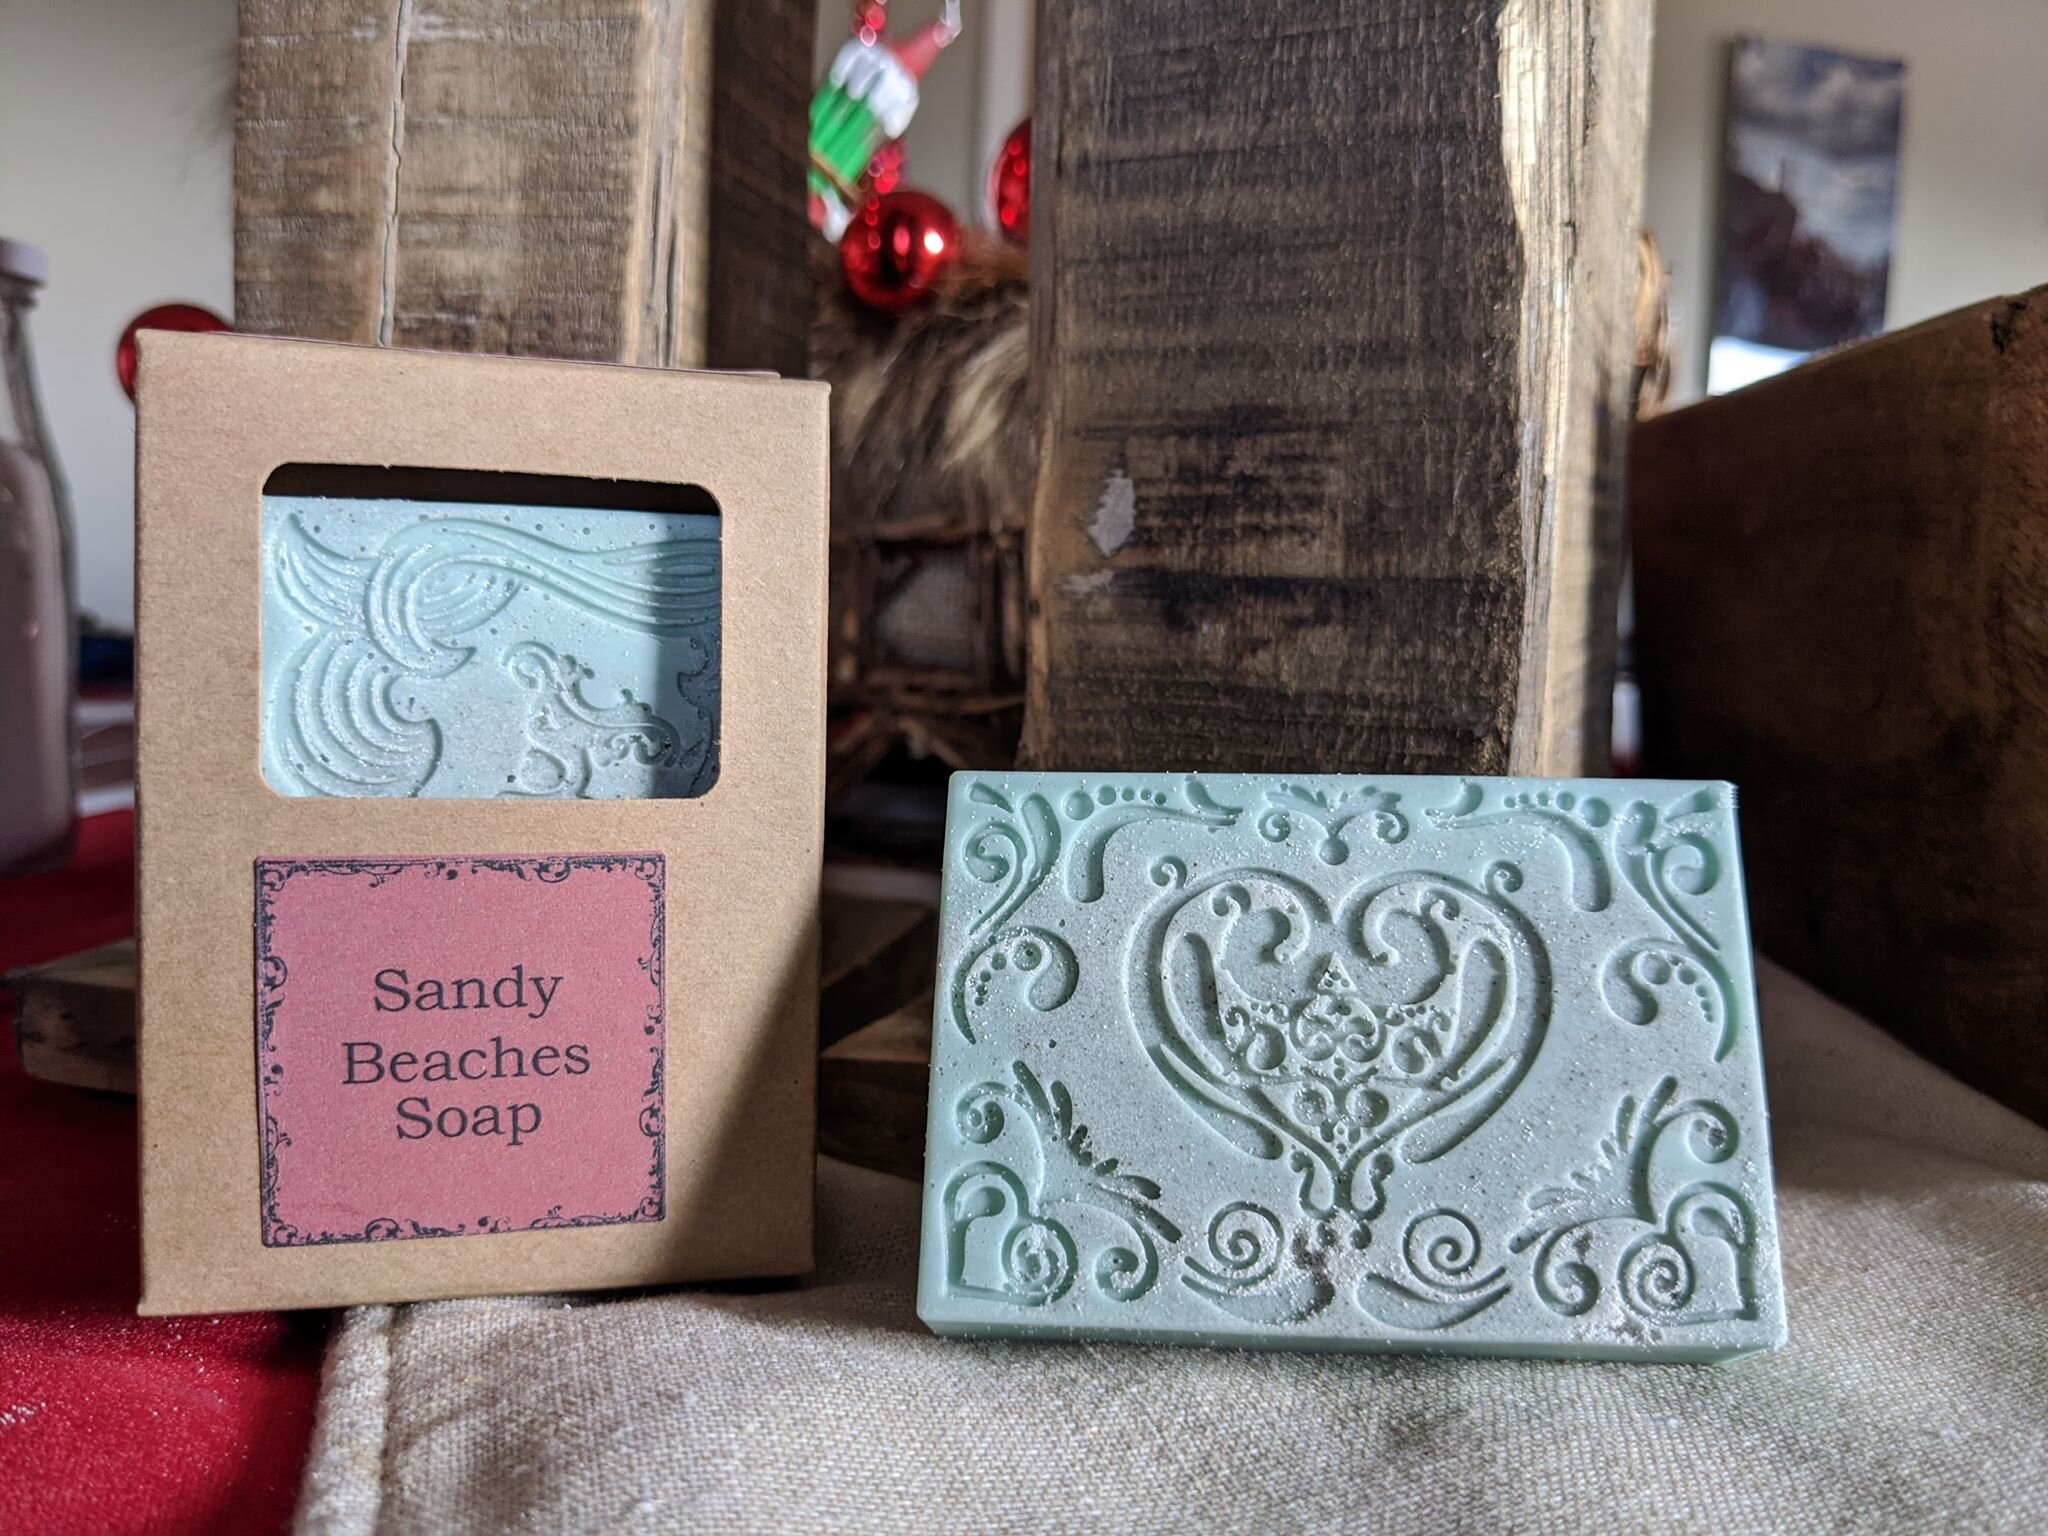 Sandy Beaches Soap - The Simply Good Sandy Beaches Goats Milk Soap is made using Lemongrass, Patchouli, Sweet Orange, Rosemary and Eucalyptus Essential Oils.  This soap also contains pumice throughout for that extra scrub.